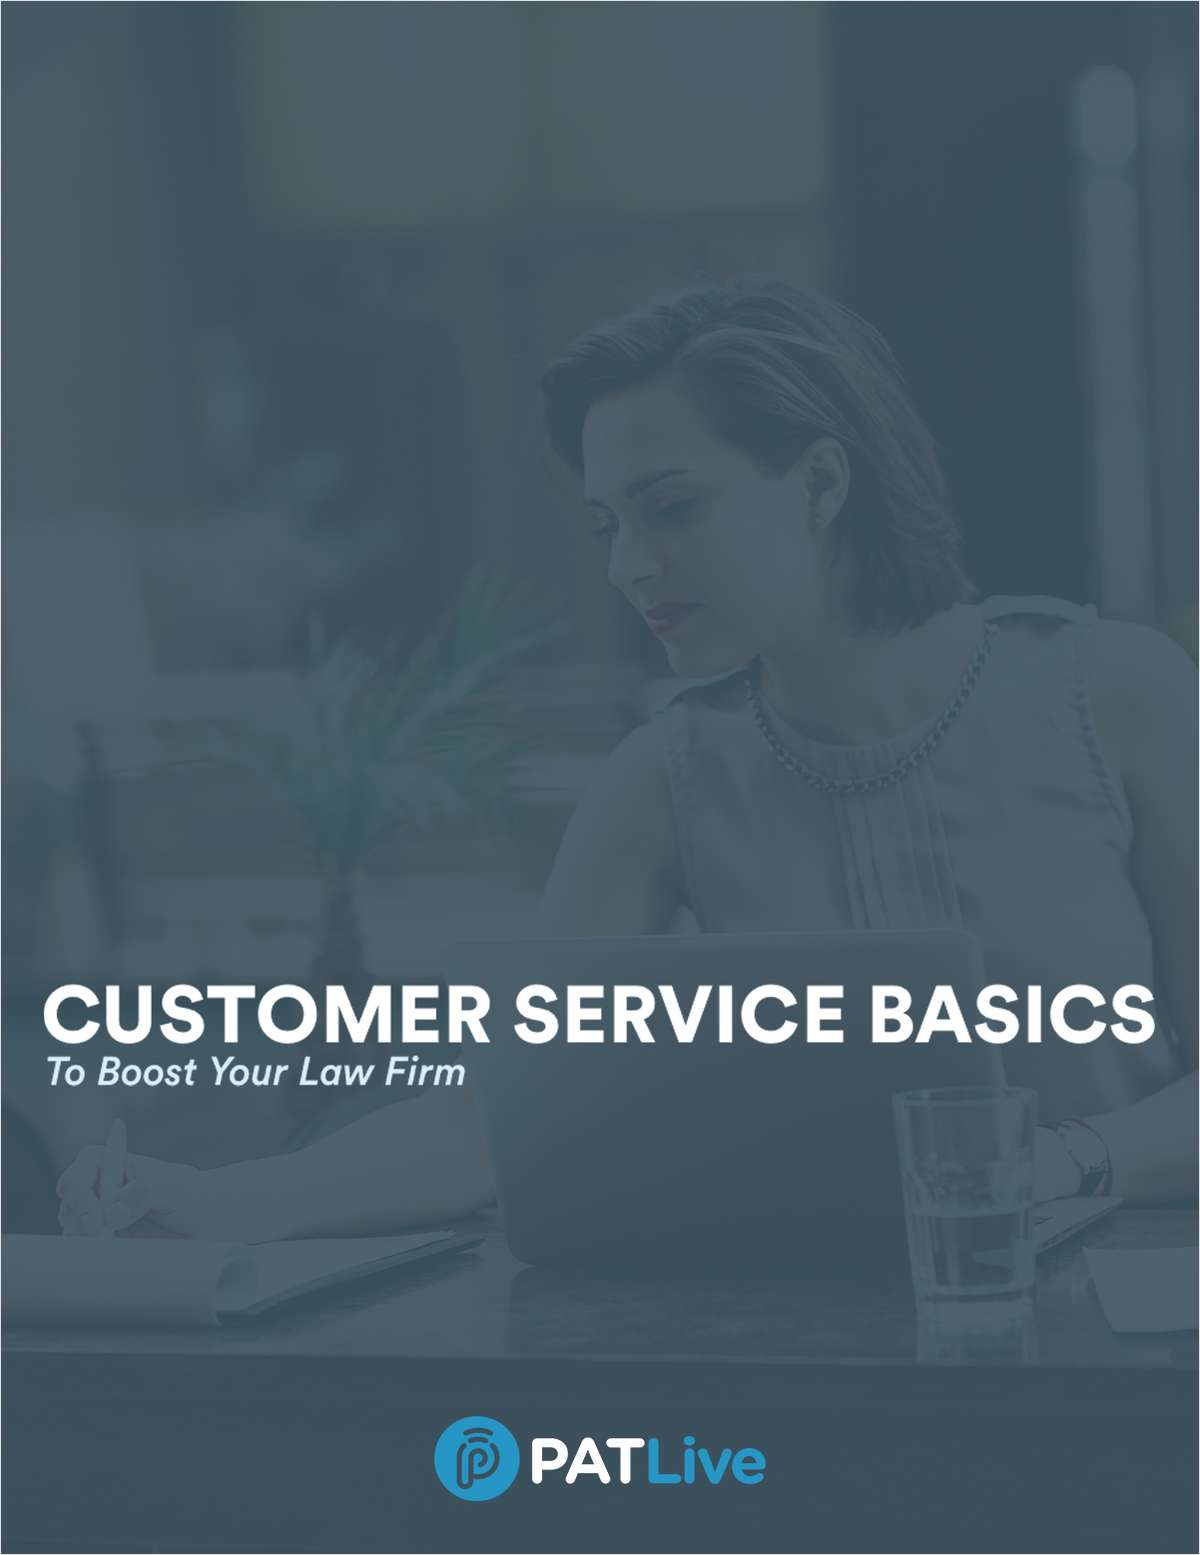 Customer Service Basics to Boost Your Law Firm